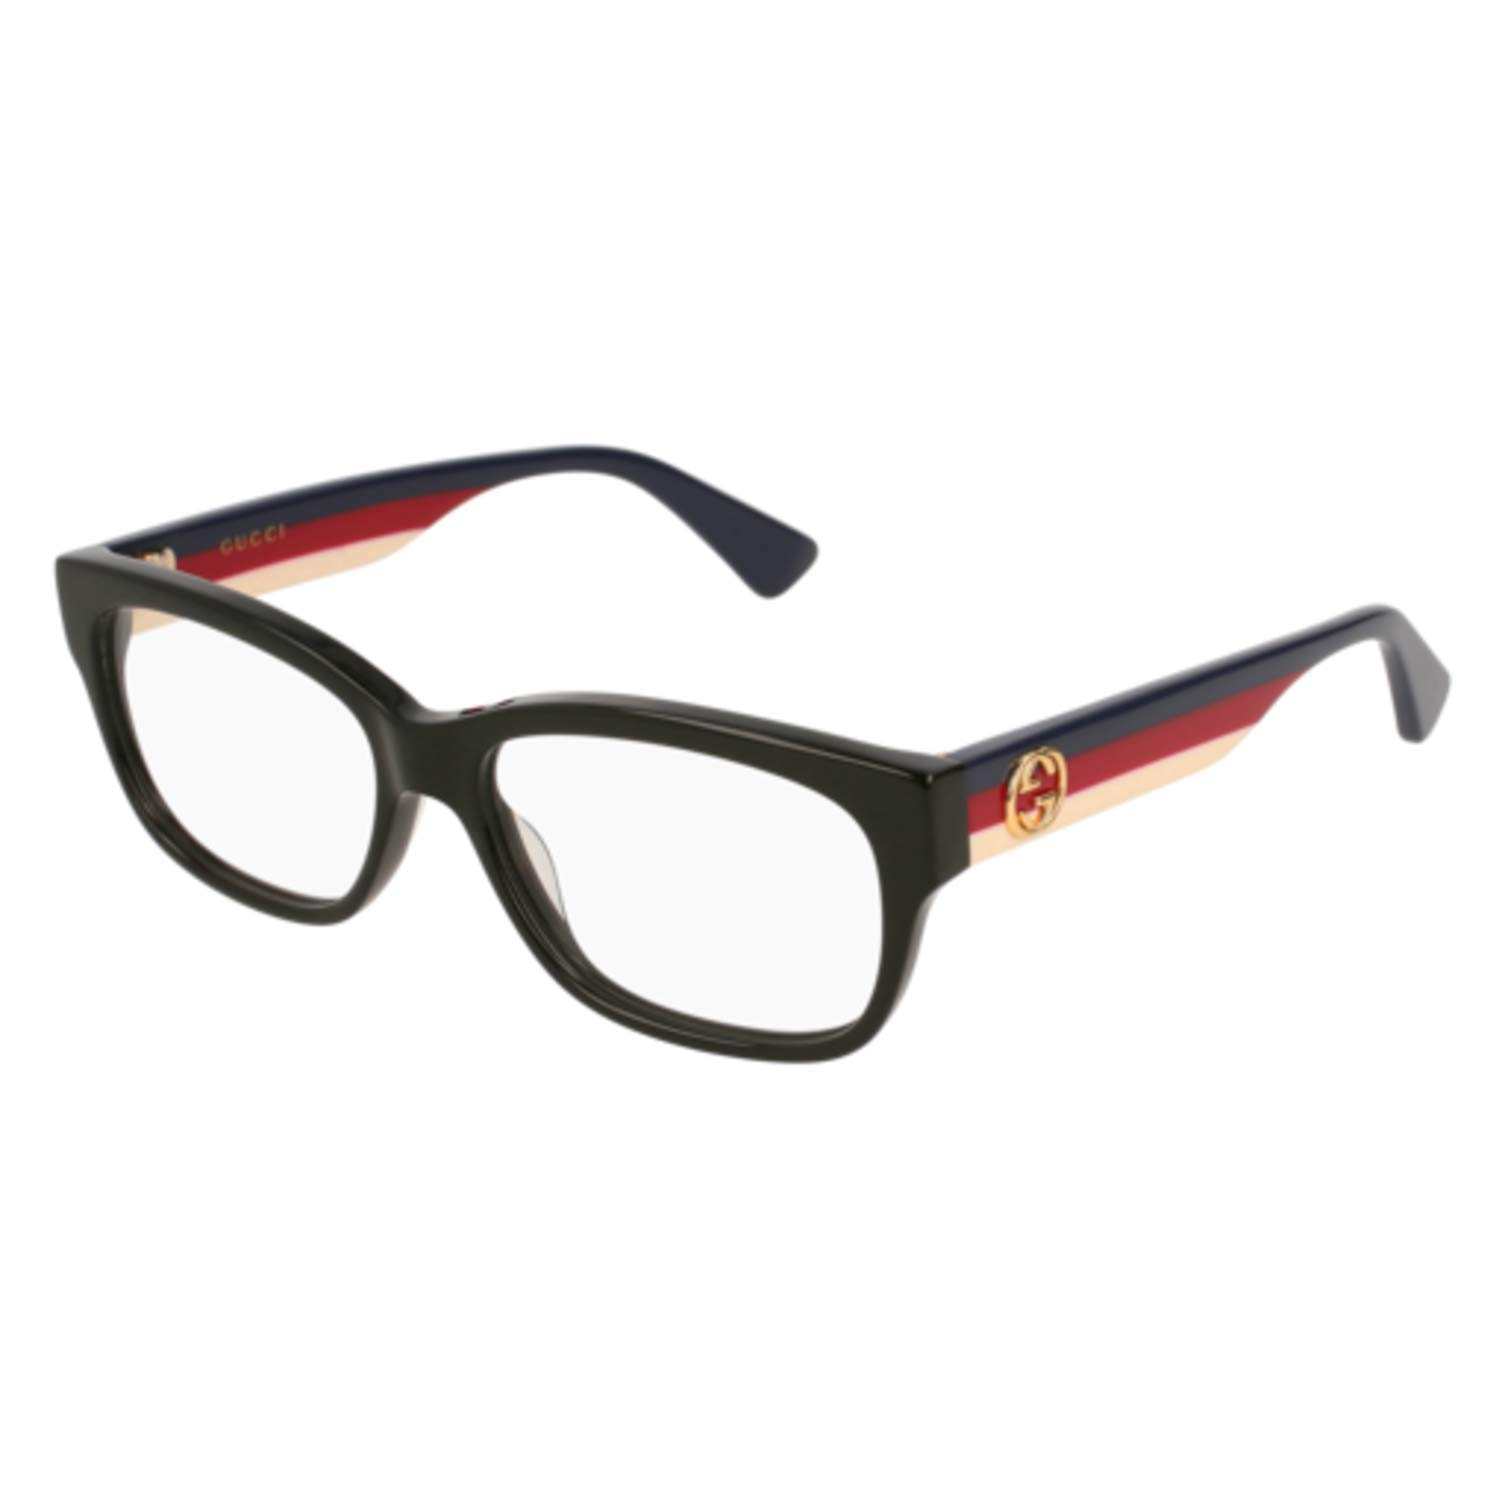 Gucci GG 0278O 001 Black Plastic Rectangle Eyeglasses 53mm by Gucci (Image #1)